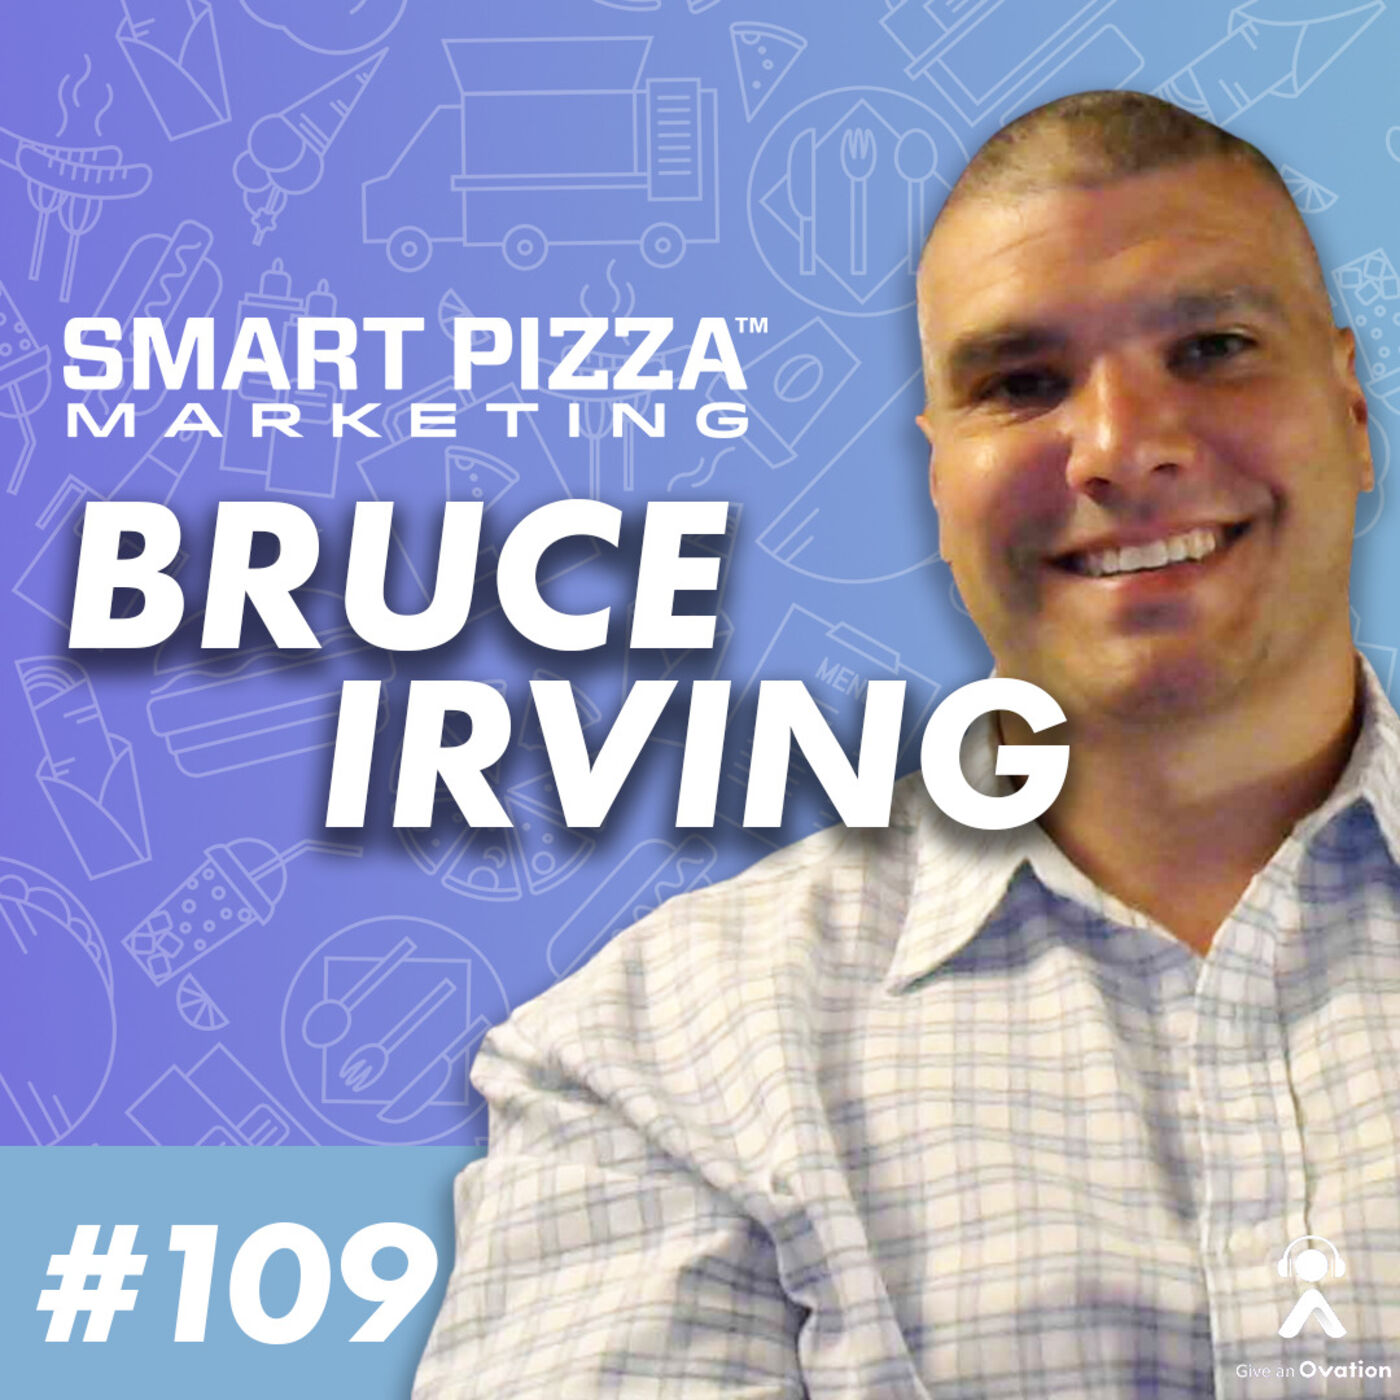 Smart Hiring, Podcasting, and Marketing with Bruce Irving